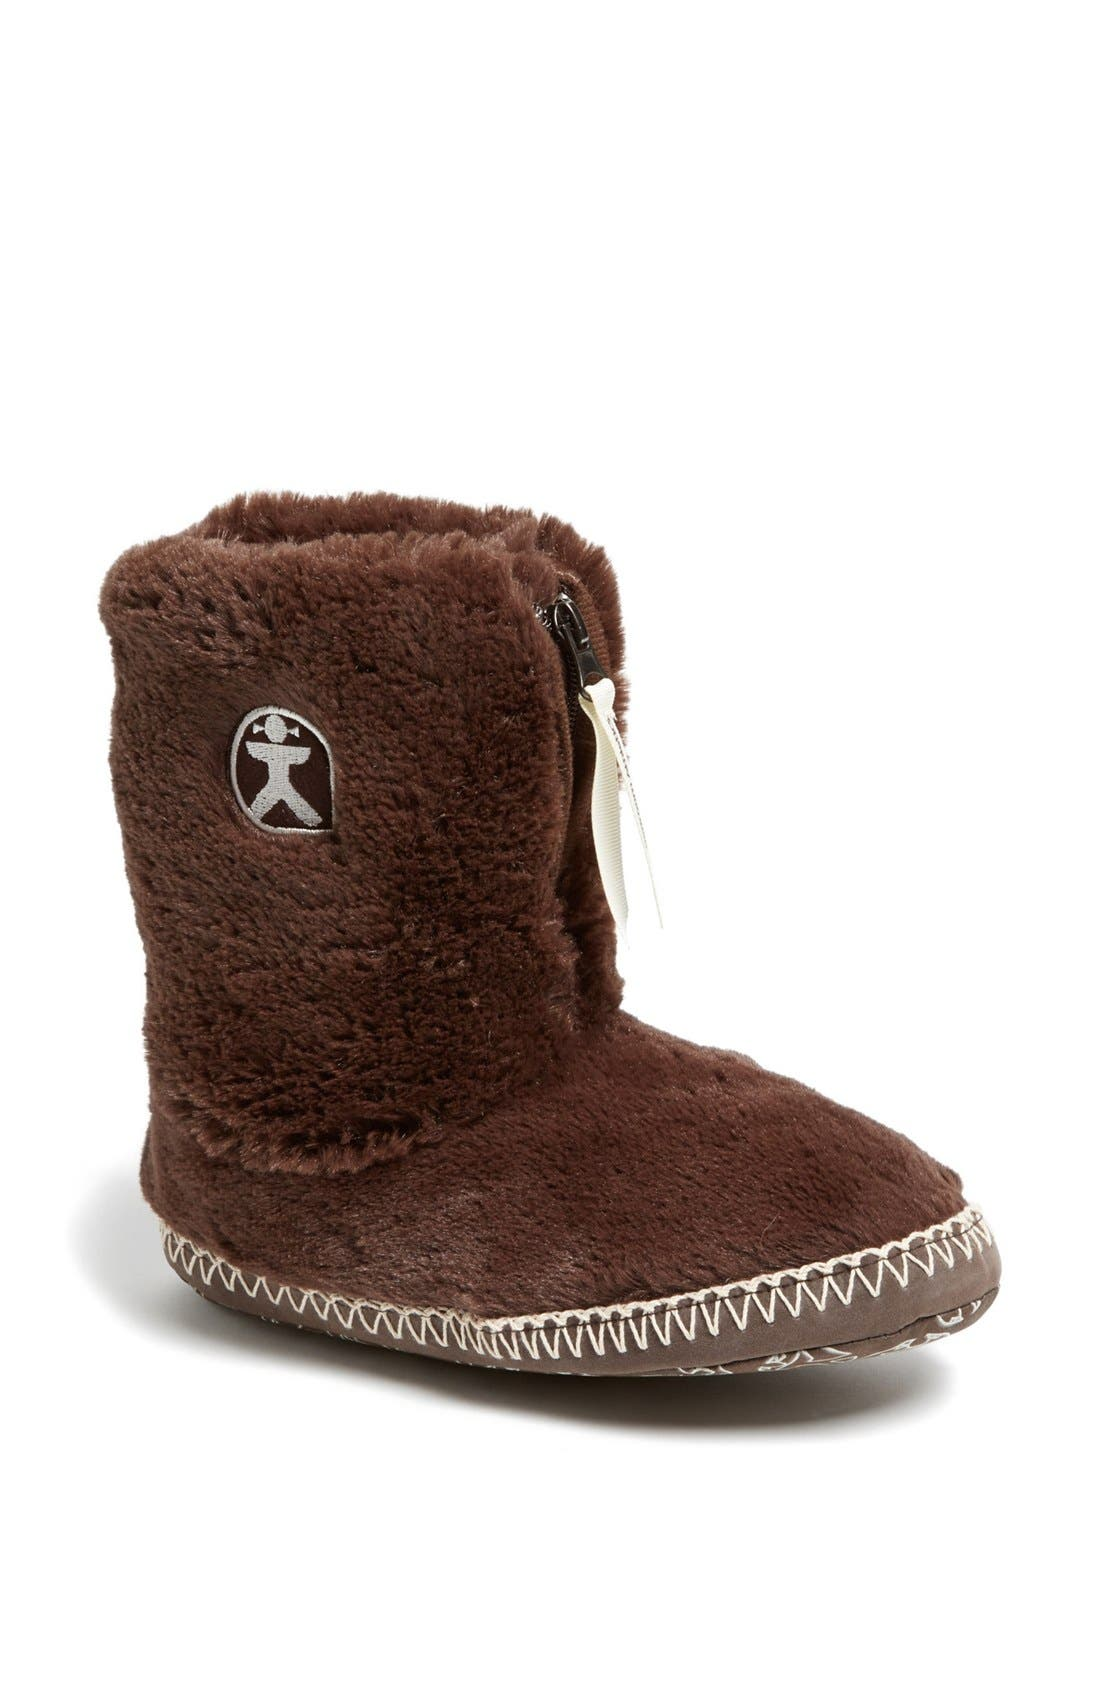 Alternate Image 1 Selected - Bedroom Athletics 'Marilyn' Faux Fur Bootie Slipper